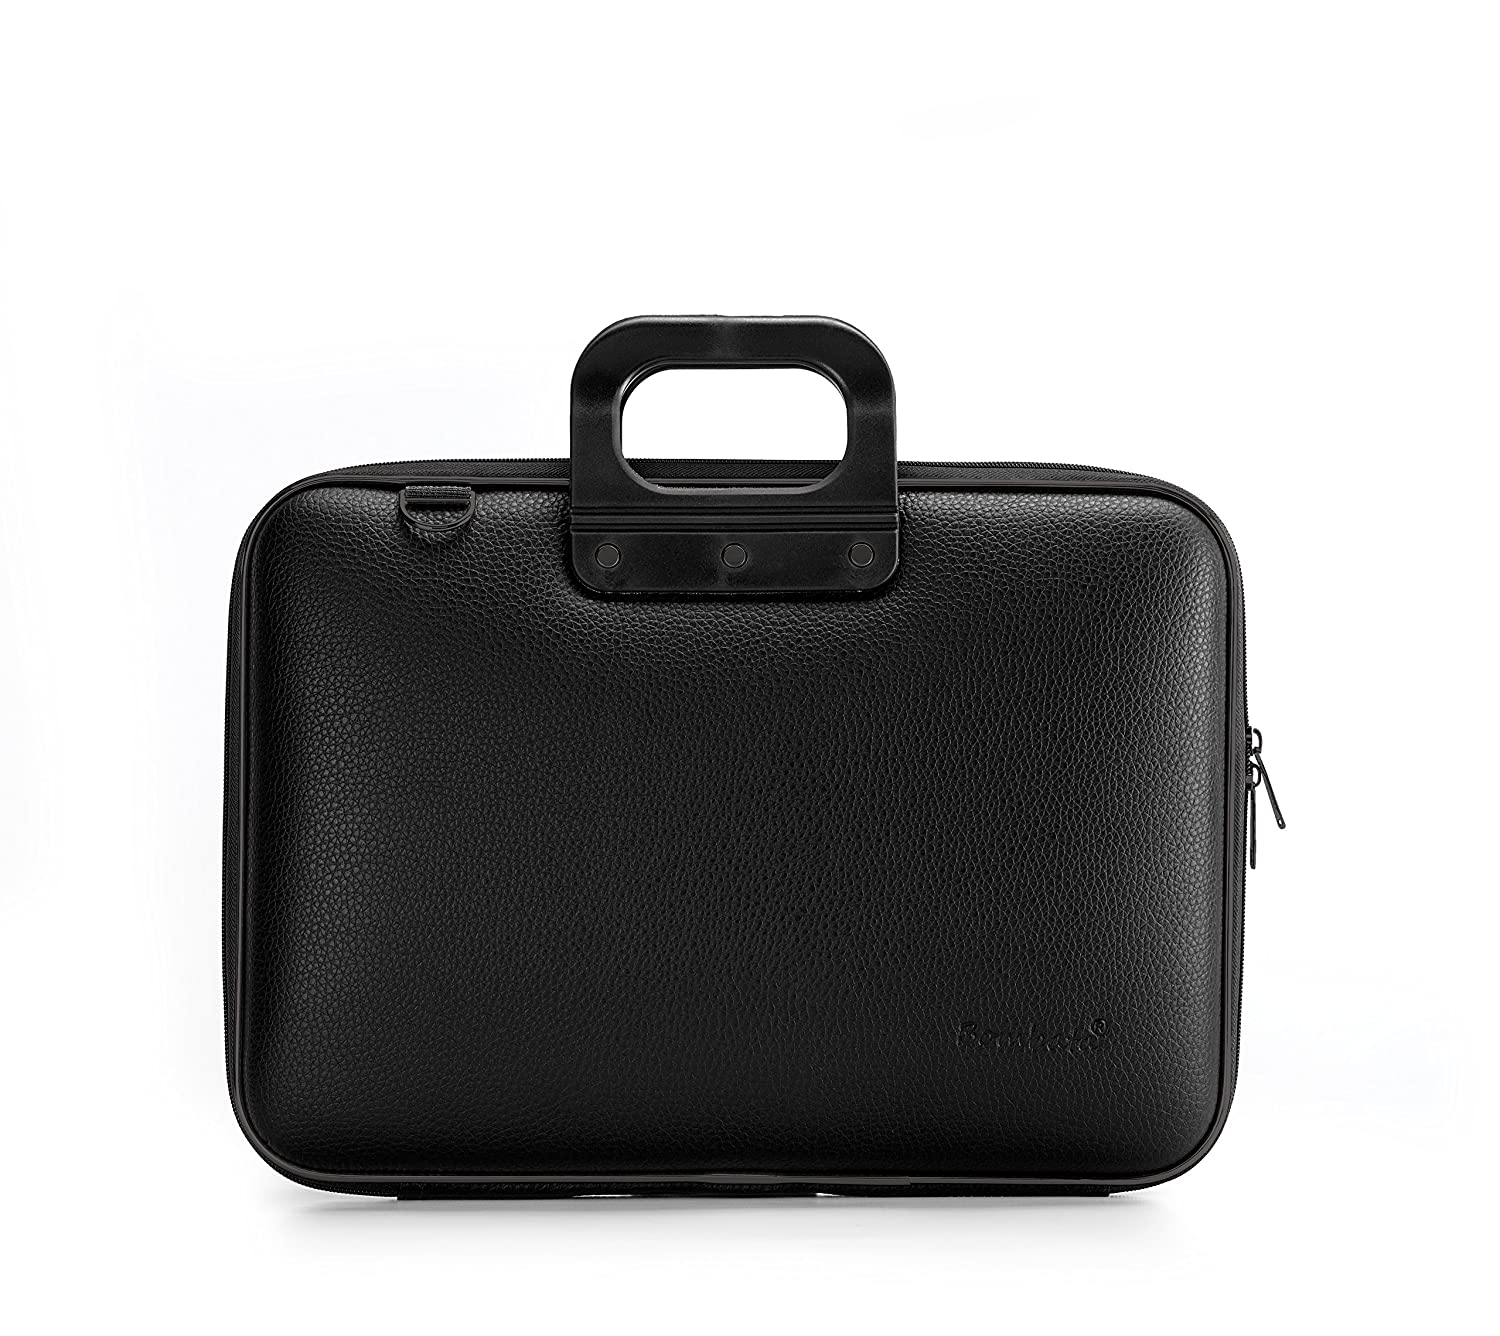 Bombata All Limited Edition 15.6 Inch Briefcase